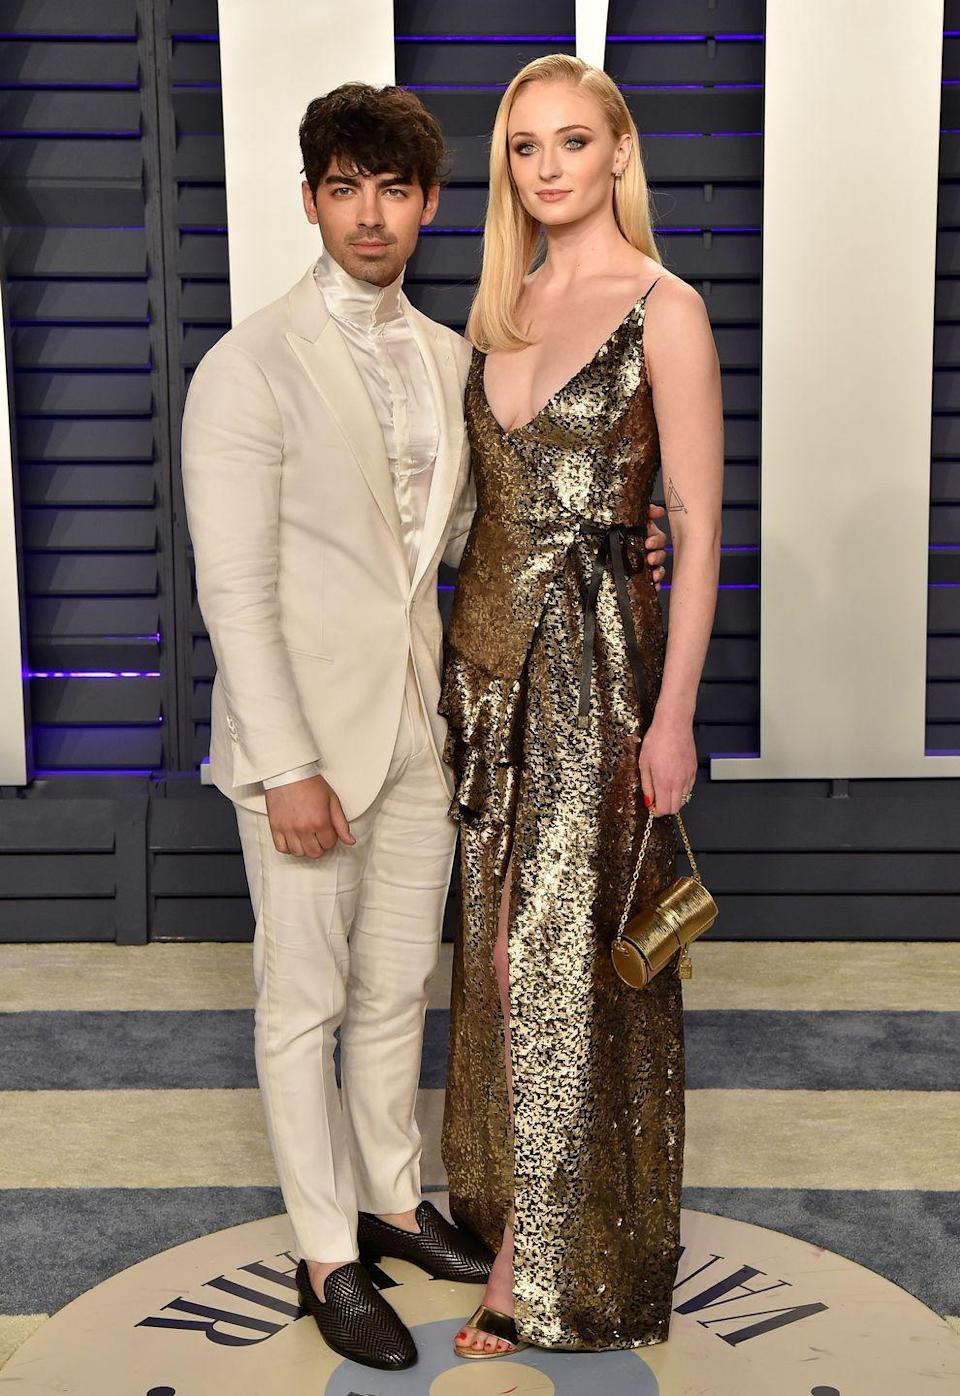 """<p><a href=""""https://www.elle.com/uk/life-and-culture/g26509306/oscars-2019-cutest-couples-red-carpet/"""" rel=""""nofollow noopener"""" target=""""_blank"""" data-ylk=""""slk:The couple attend"""" class=""""link rapid-noclick-resp"""">The couple attend </a>the Vanity Fair Academy Awards after party.</p>"""